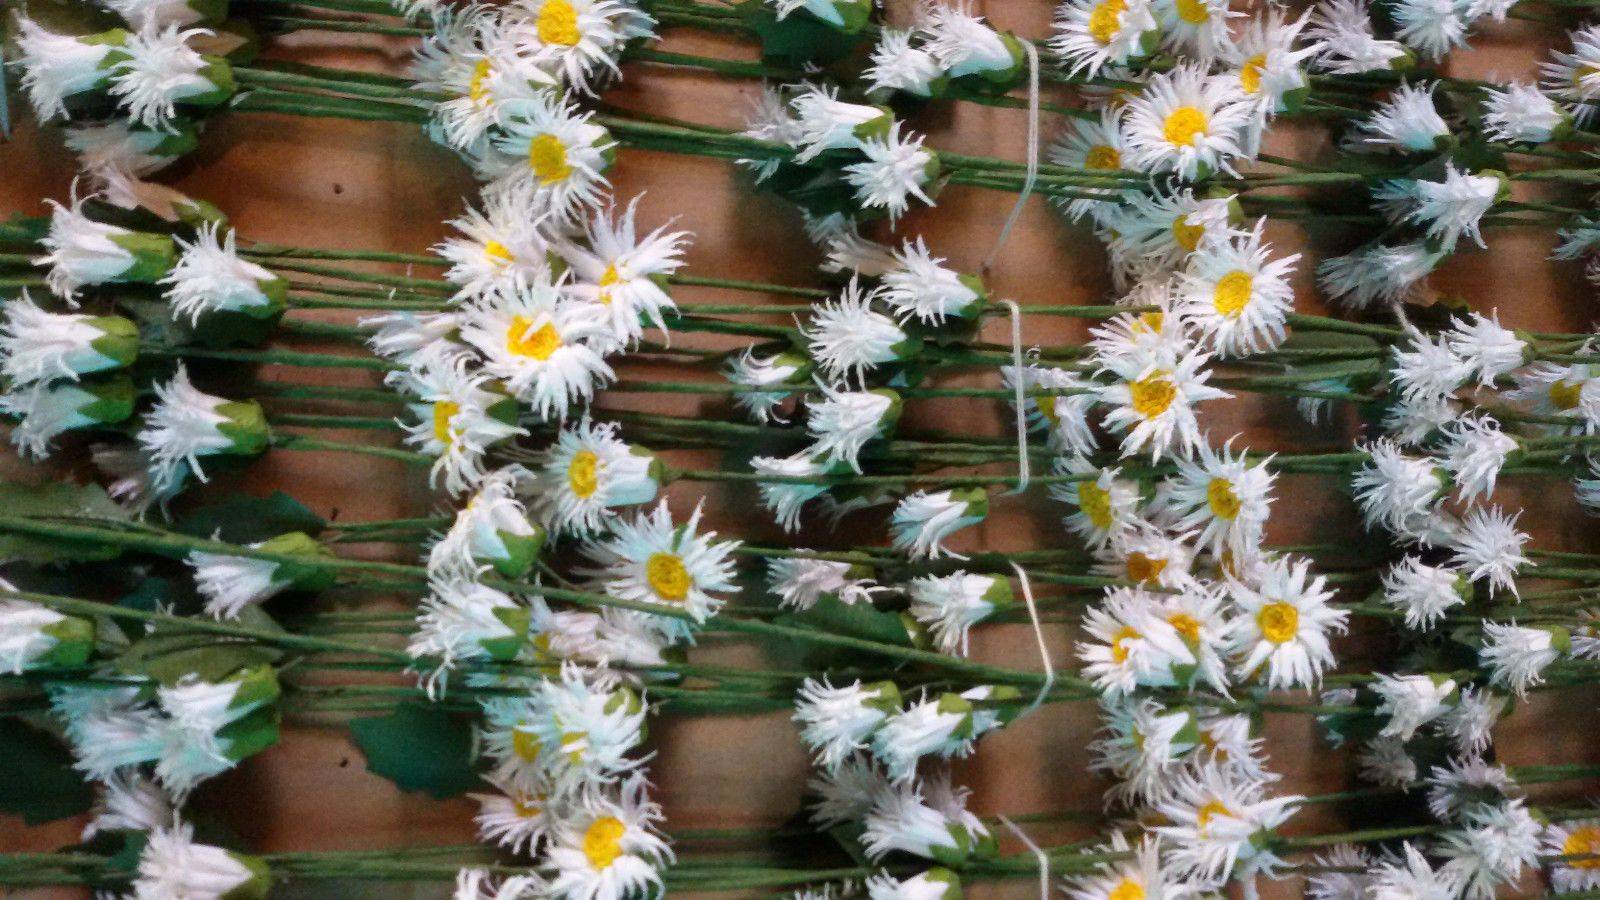 3ft silk plastic flower daisy garland whitehead dresswedding 3ft silk plastic flower daisy garland whitehead dressweddingdecoration x 10 junglespirit Choice Image